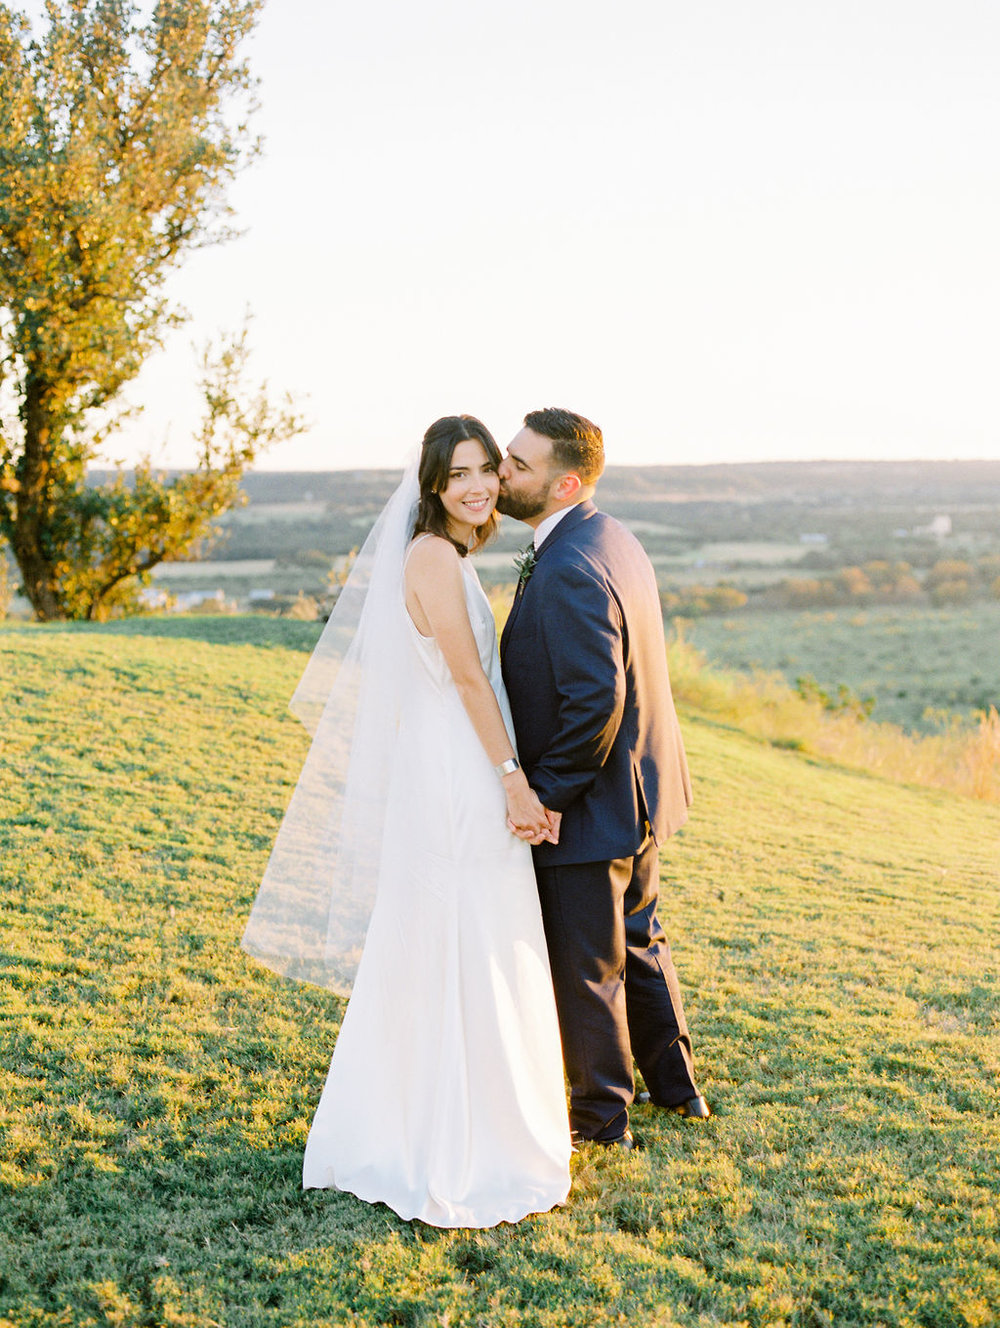 Austin-Film-Wedding-Photographer-Contigo-Ranch-Modern-109.jpg